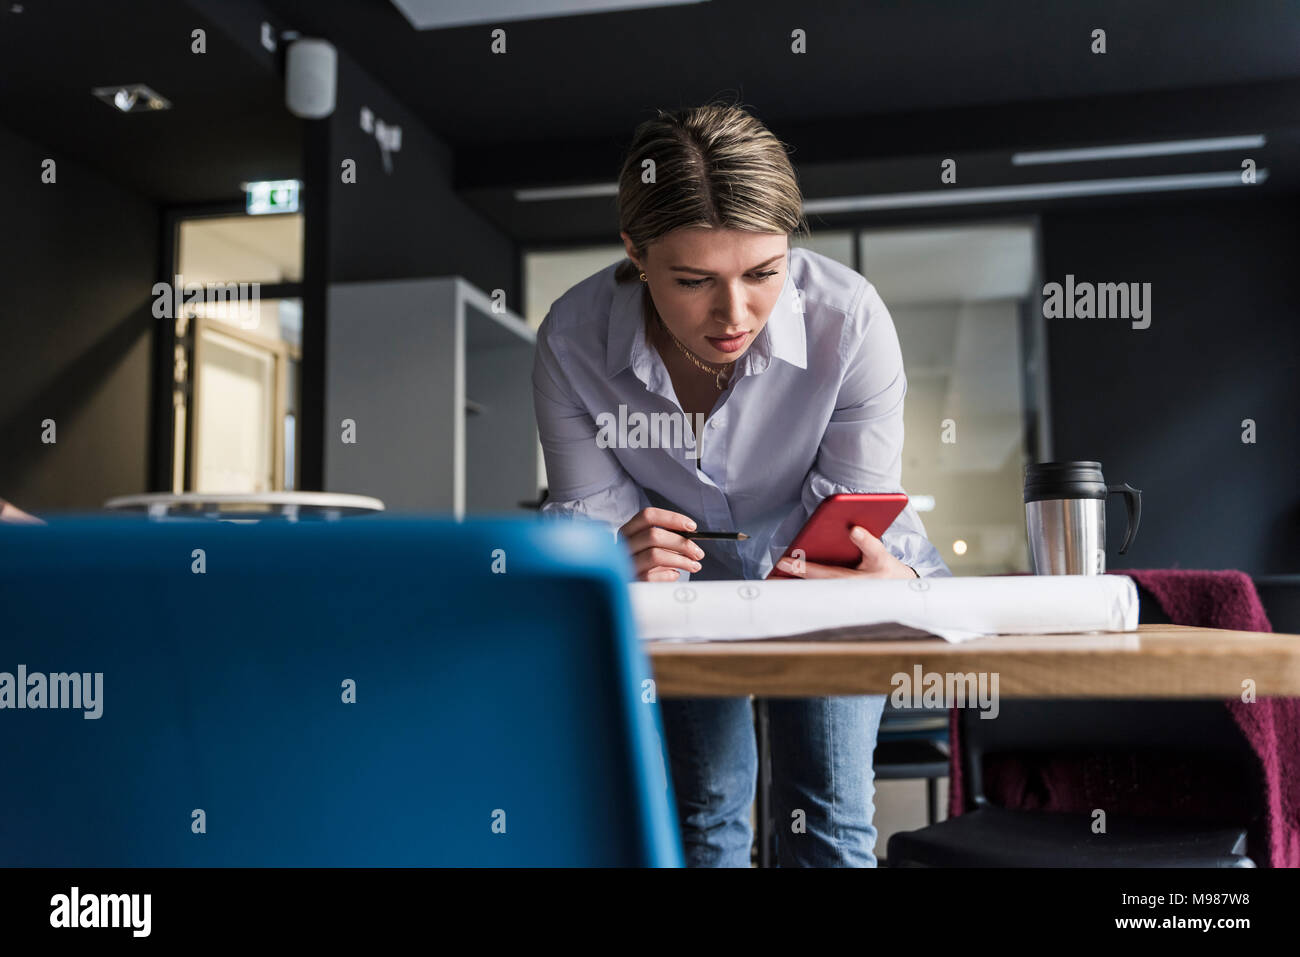 Young woman with cell phone and plan at table in office - Stock Image